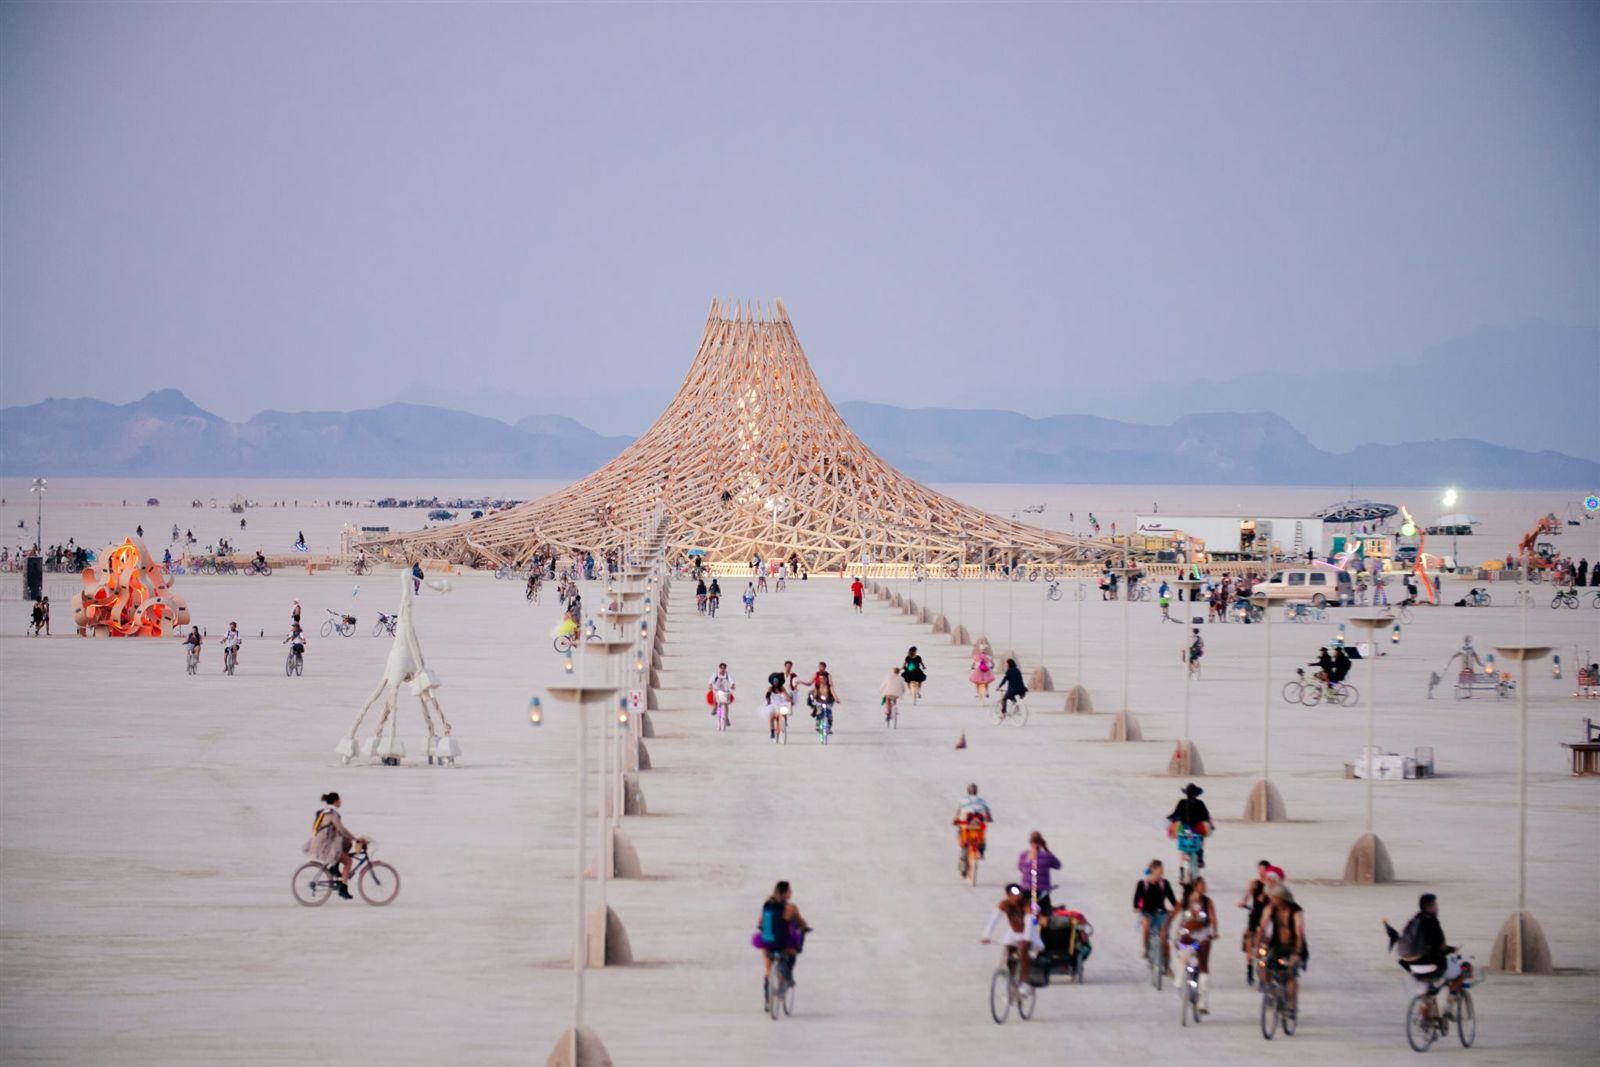 IWCS Burning Man Documentary Series - Wind of Changes